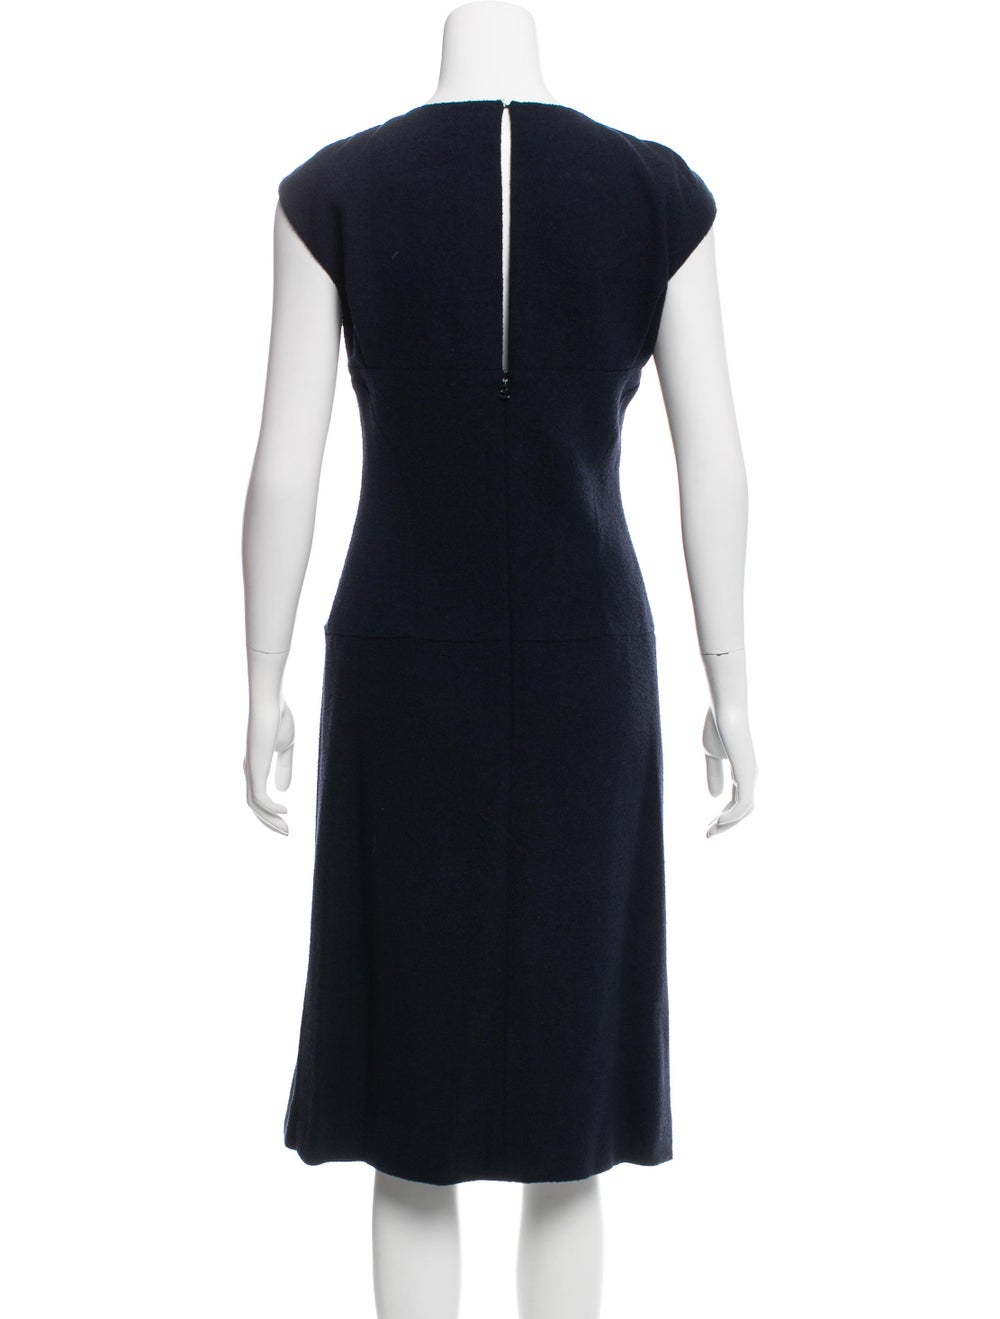 Chanel Terrycloth Sheath Dress - image 3